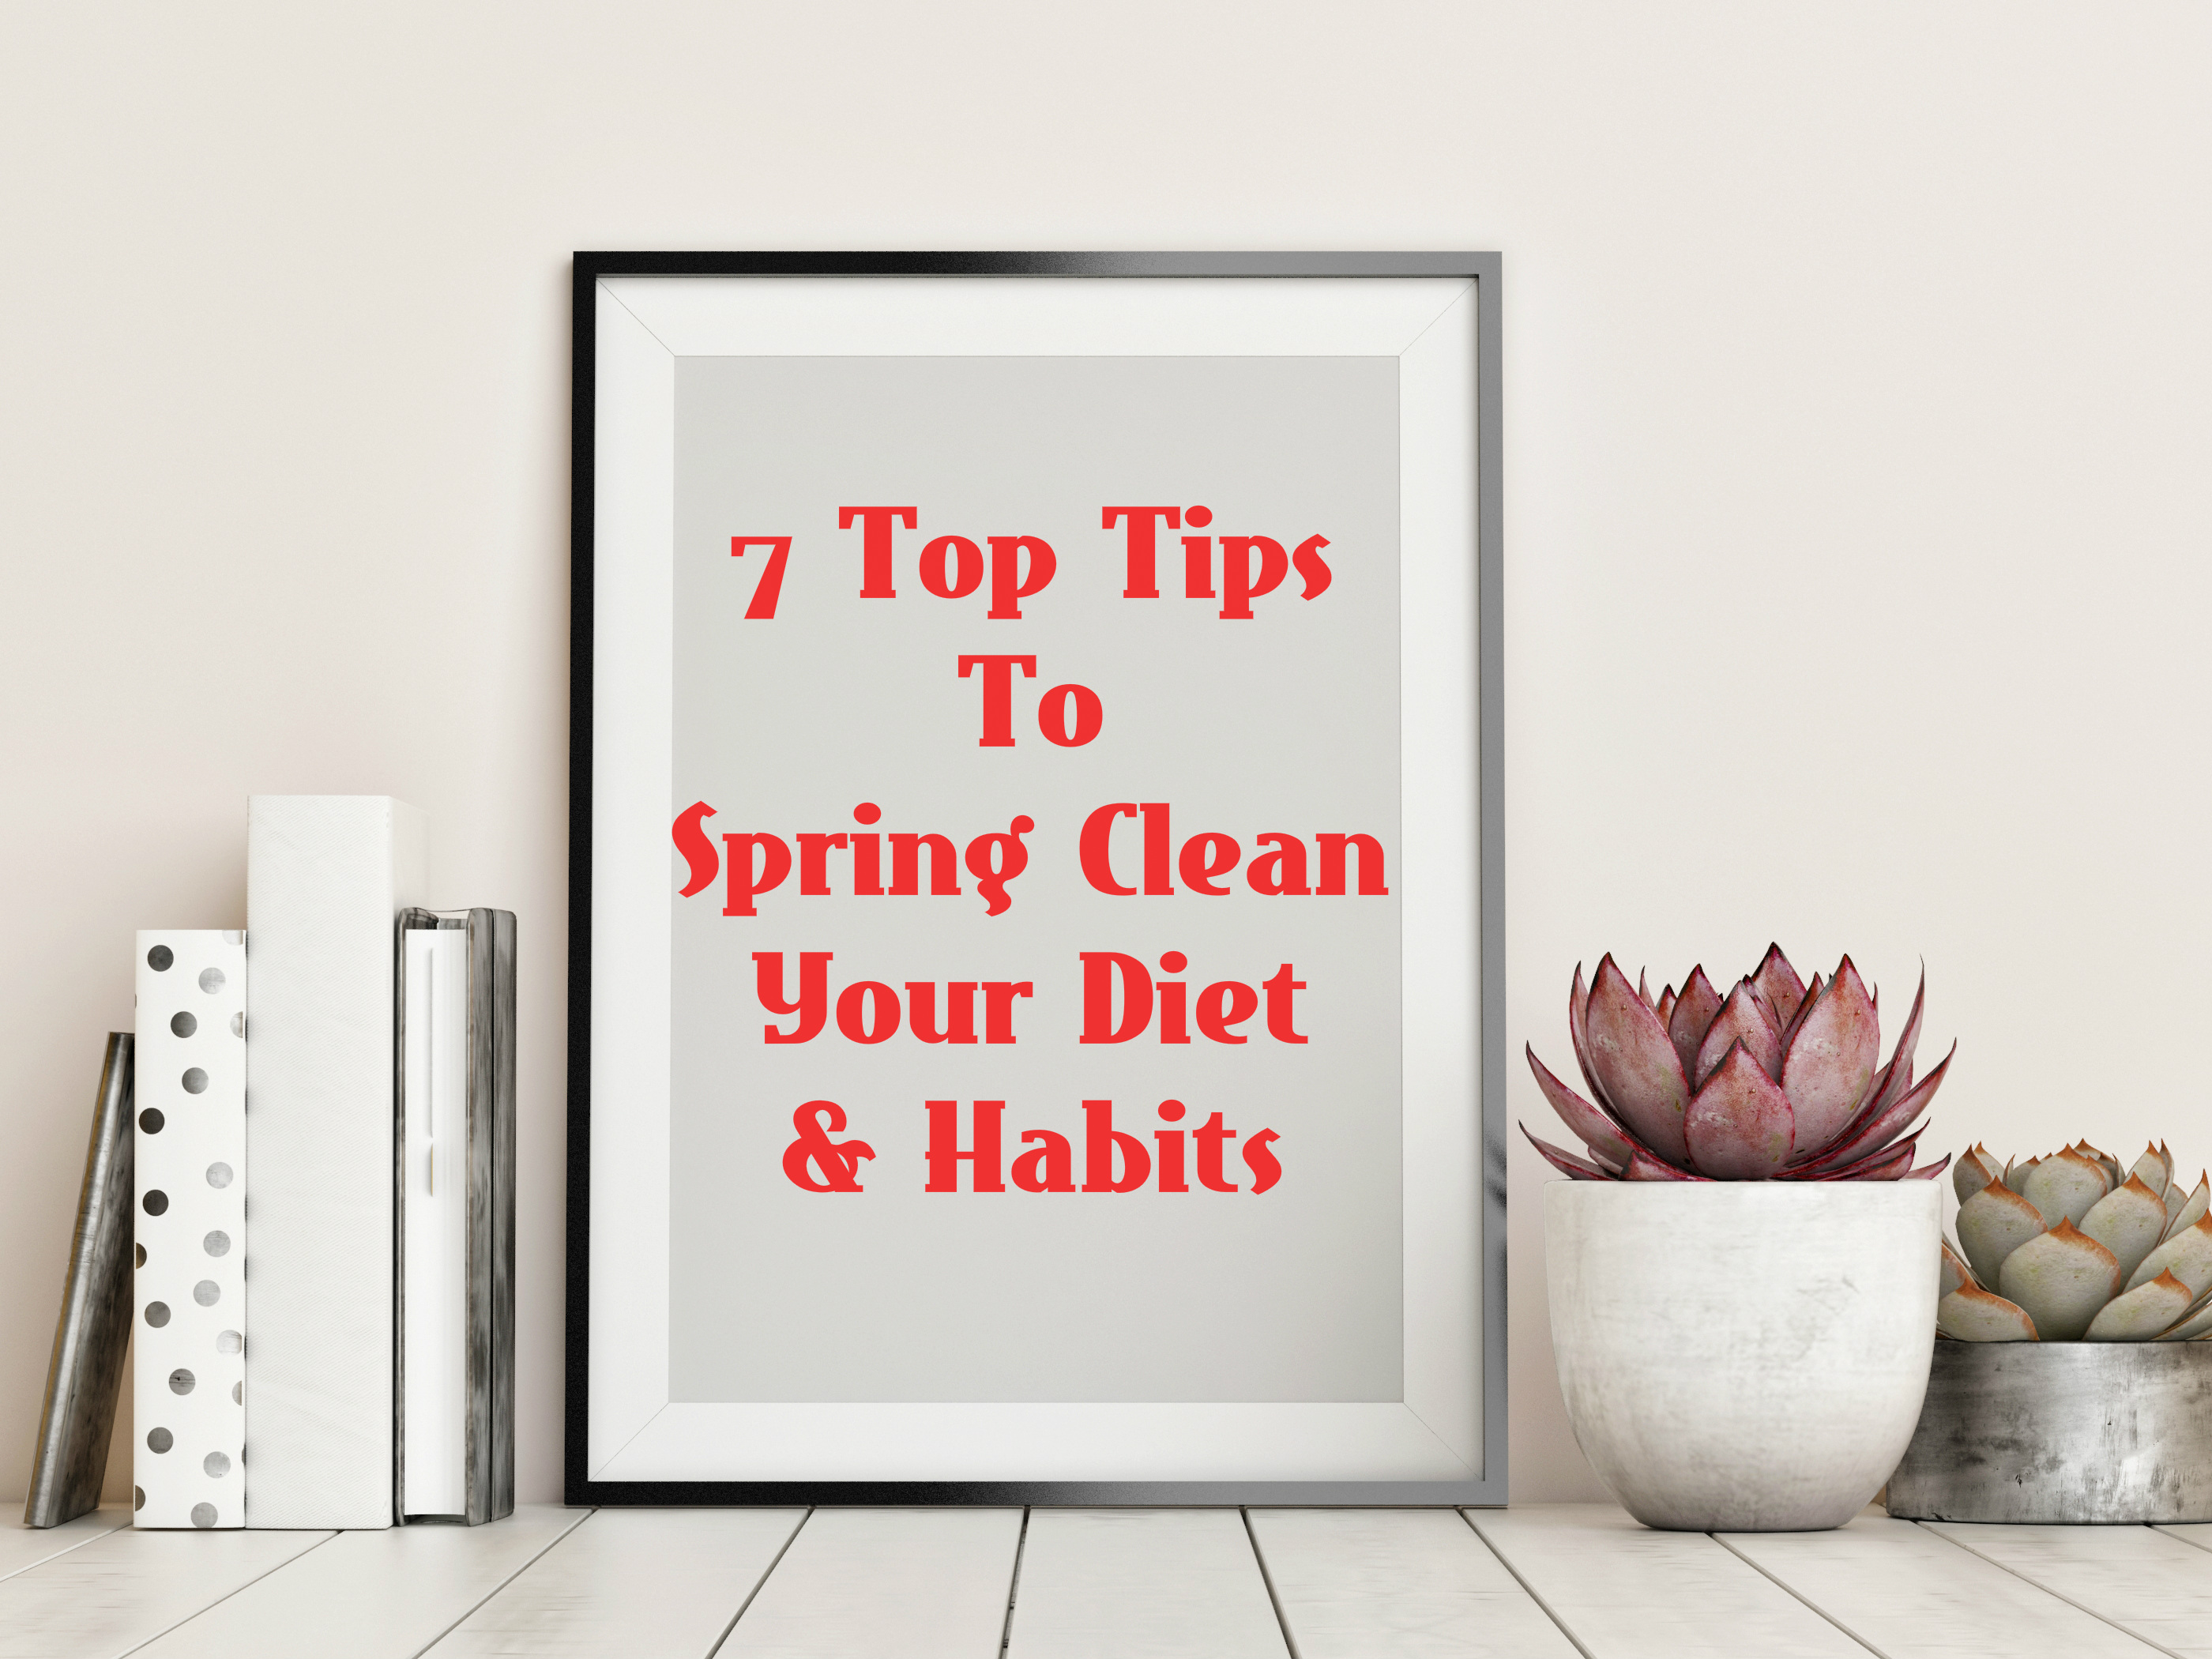 7 Top Tips To Spring Clean Your Diet & Habits